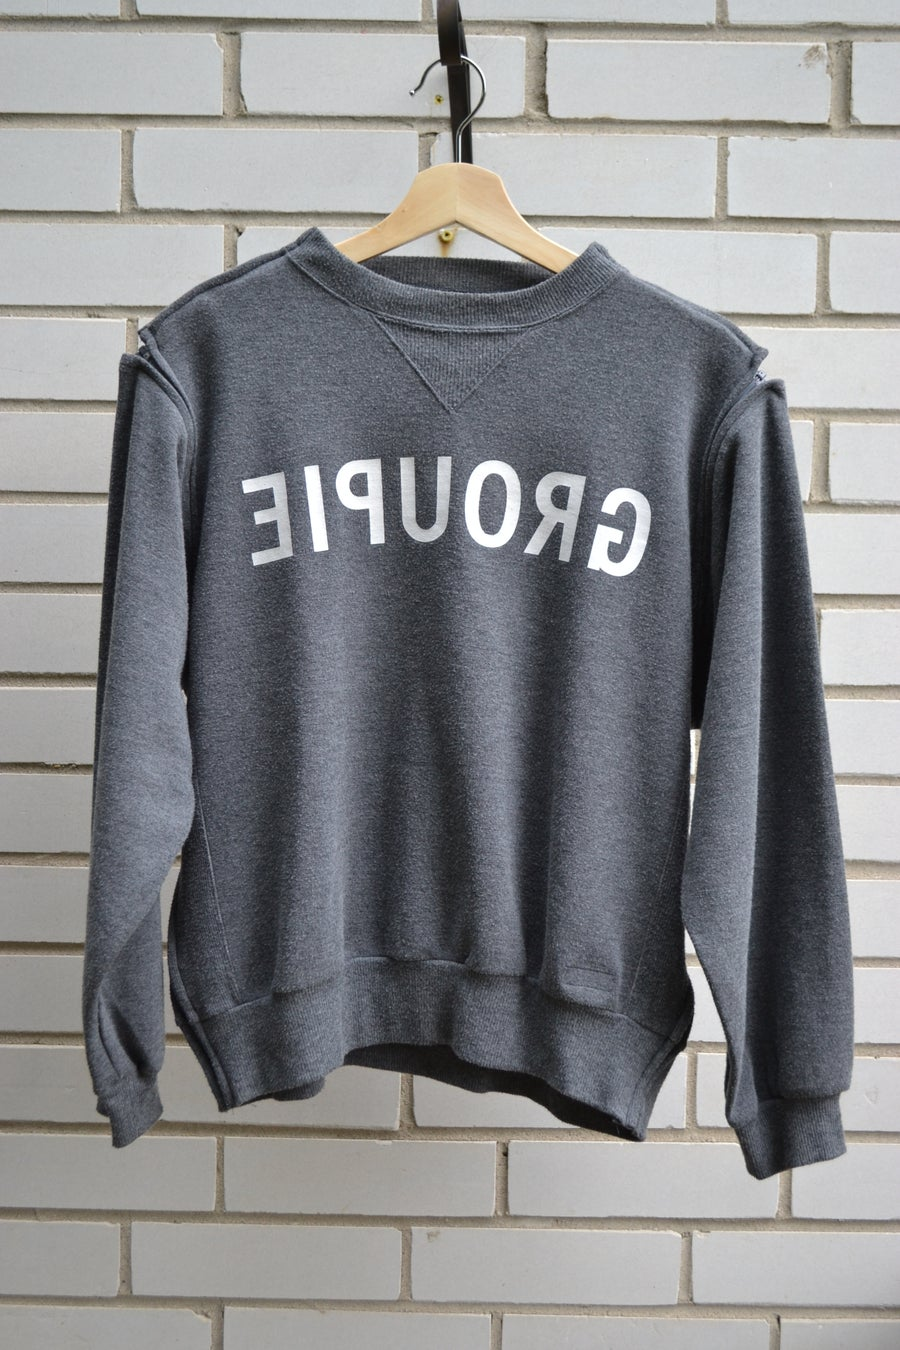 Image of Undercover SS1999 Zipper 'Groupie' Grey Sweater Crew Neck